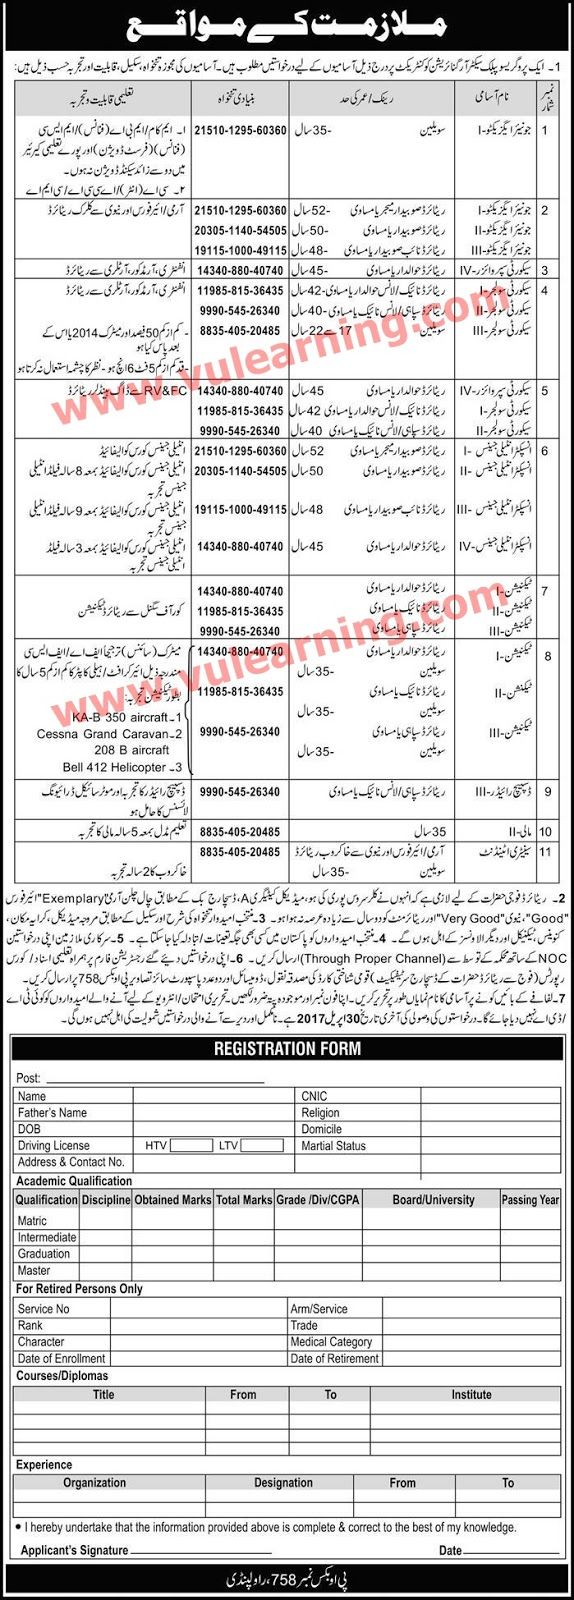 #  Title  Details  1  Jobs Location  Pakistan  2  Government / Private  Government  3  FPSC / PPSC / NTS / Others  Others  4  Published Date  02 Apr 2017 Sunday  5  Last Date to Apply  30 Apr 2017 Sunday  6  Newspaper Name  Express  Pak Army Jobs 2017 PO Box 758 Rawalpindi for Junior Executive Security Solider Technician Inspector Intelligence & Others Latest  A Progressive public Sector Organization (PO Box Box 758 Rawalpindi) has announced various jobs for Junior Executive Security Solider…